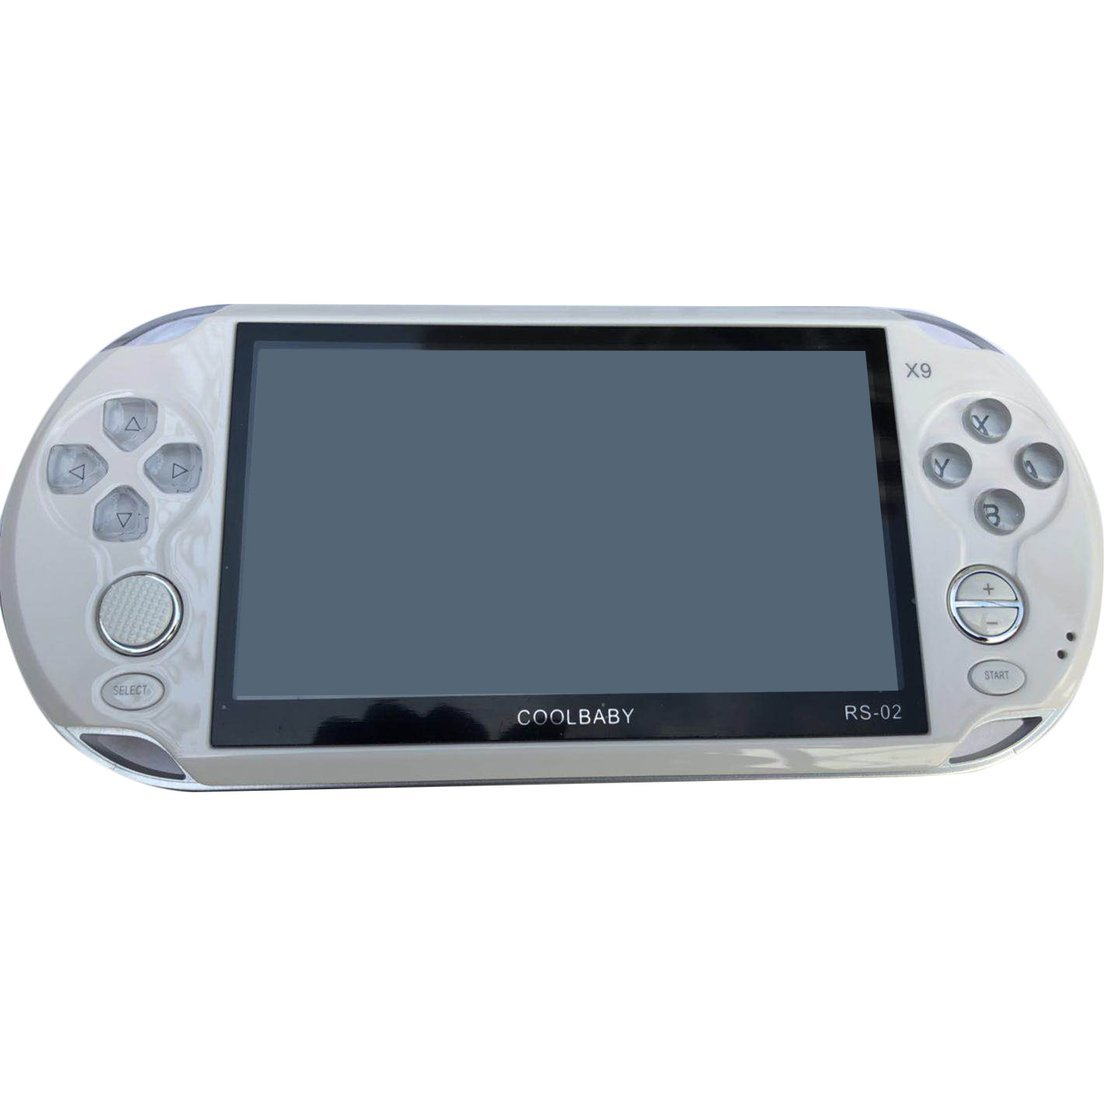 Exiao 5.0 Inch Large Screen 8GB Game Console Handheld Game Player MP3 Player by Exiao (Image #1)